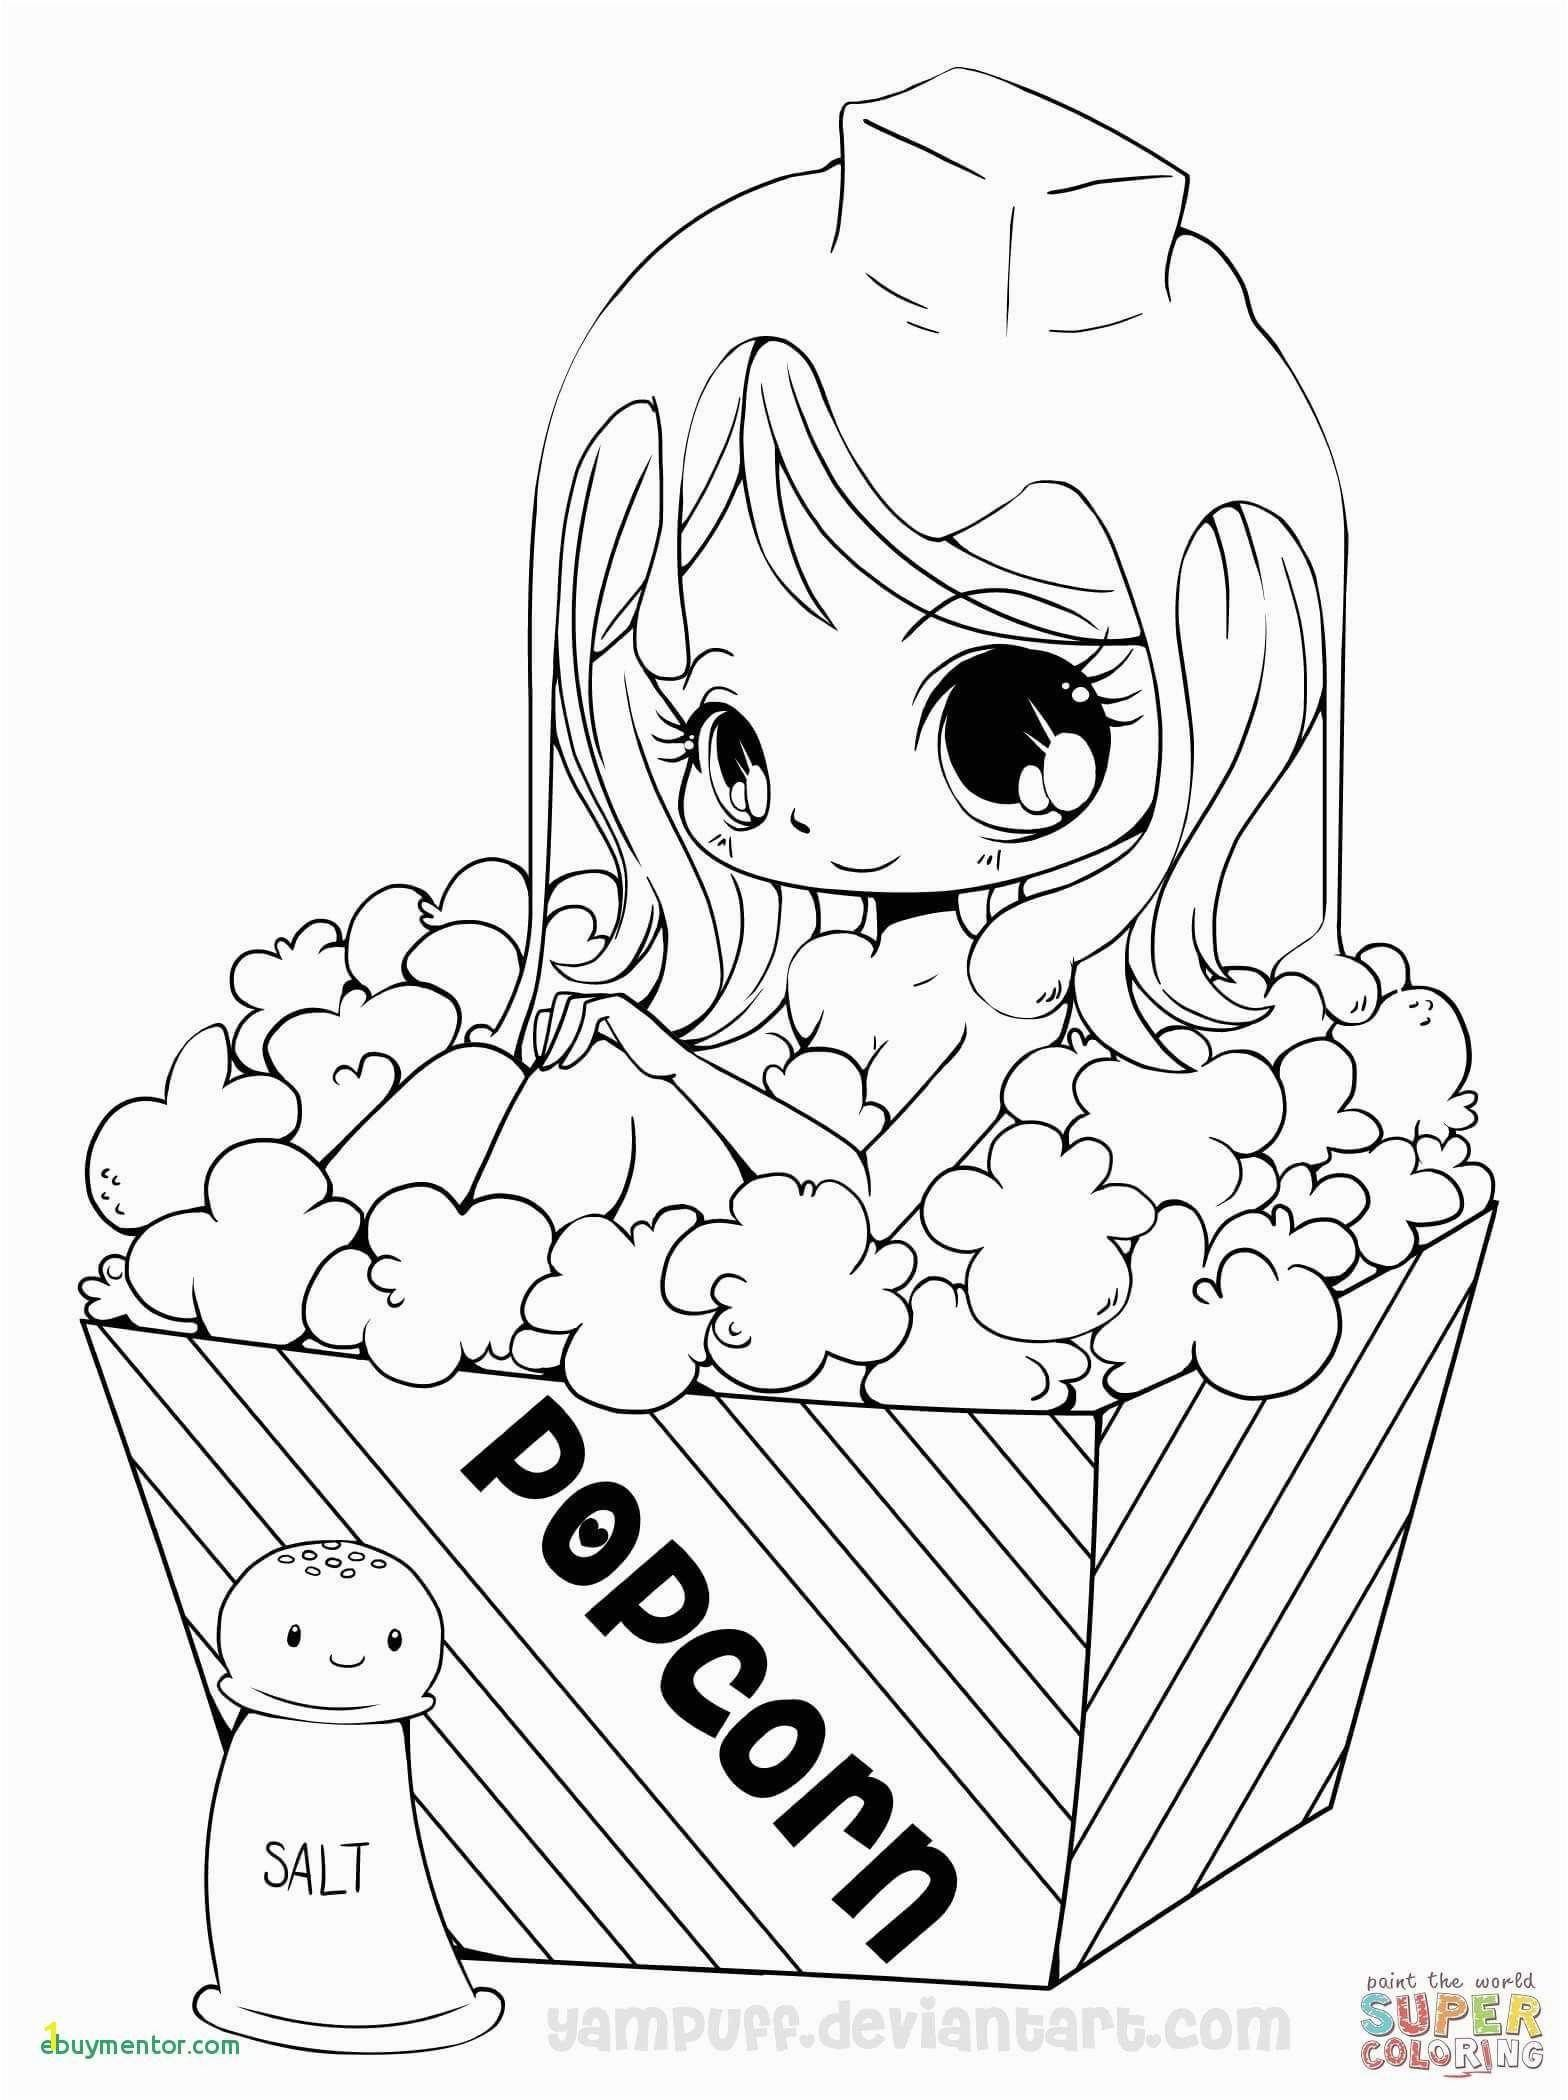 Red Queen Coloring Book Lovely Shopkin Coloring Books Chibi Coloring Pages Cartoon Coloring Pages Princess Coloring Pages